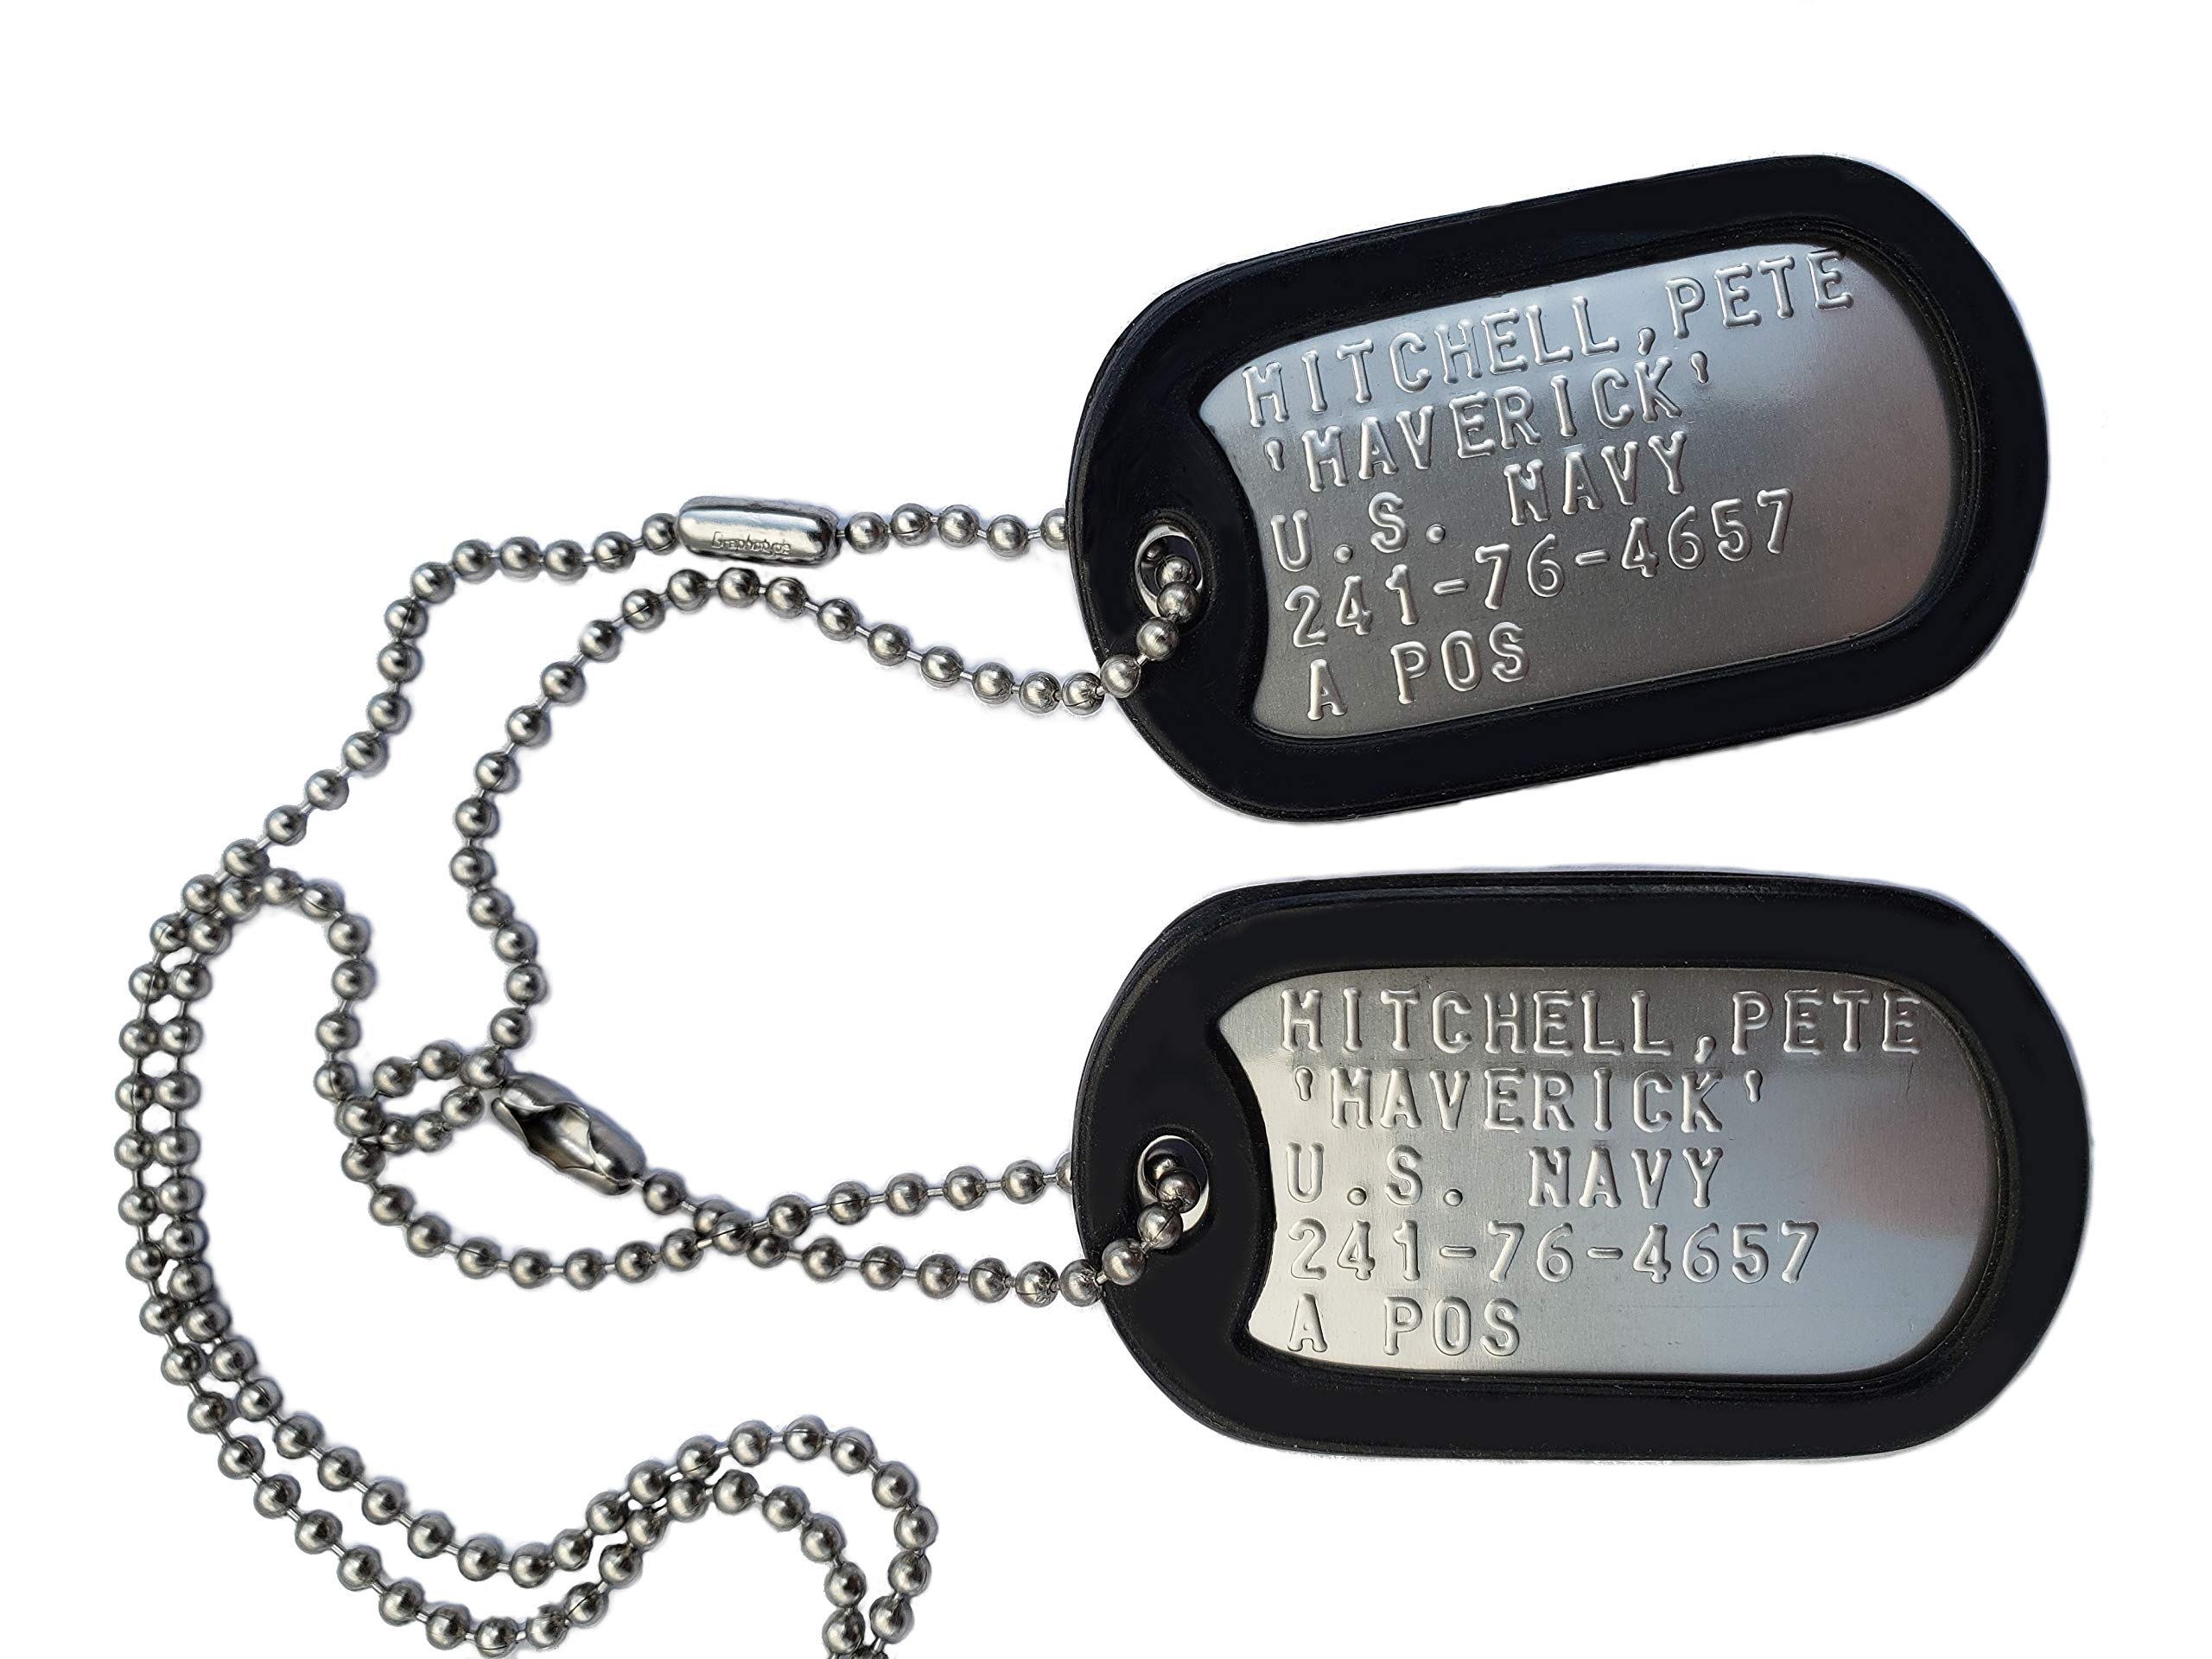 GRAPHOTYPE™ TOP GUN PETE MITCHELL MAVERICK STAINLESS STEEL DOG TAG SET